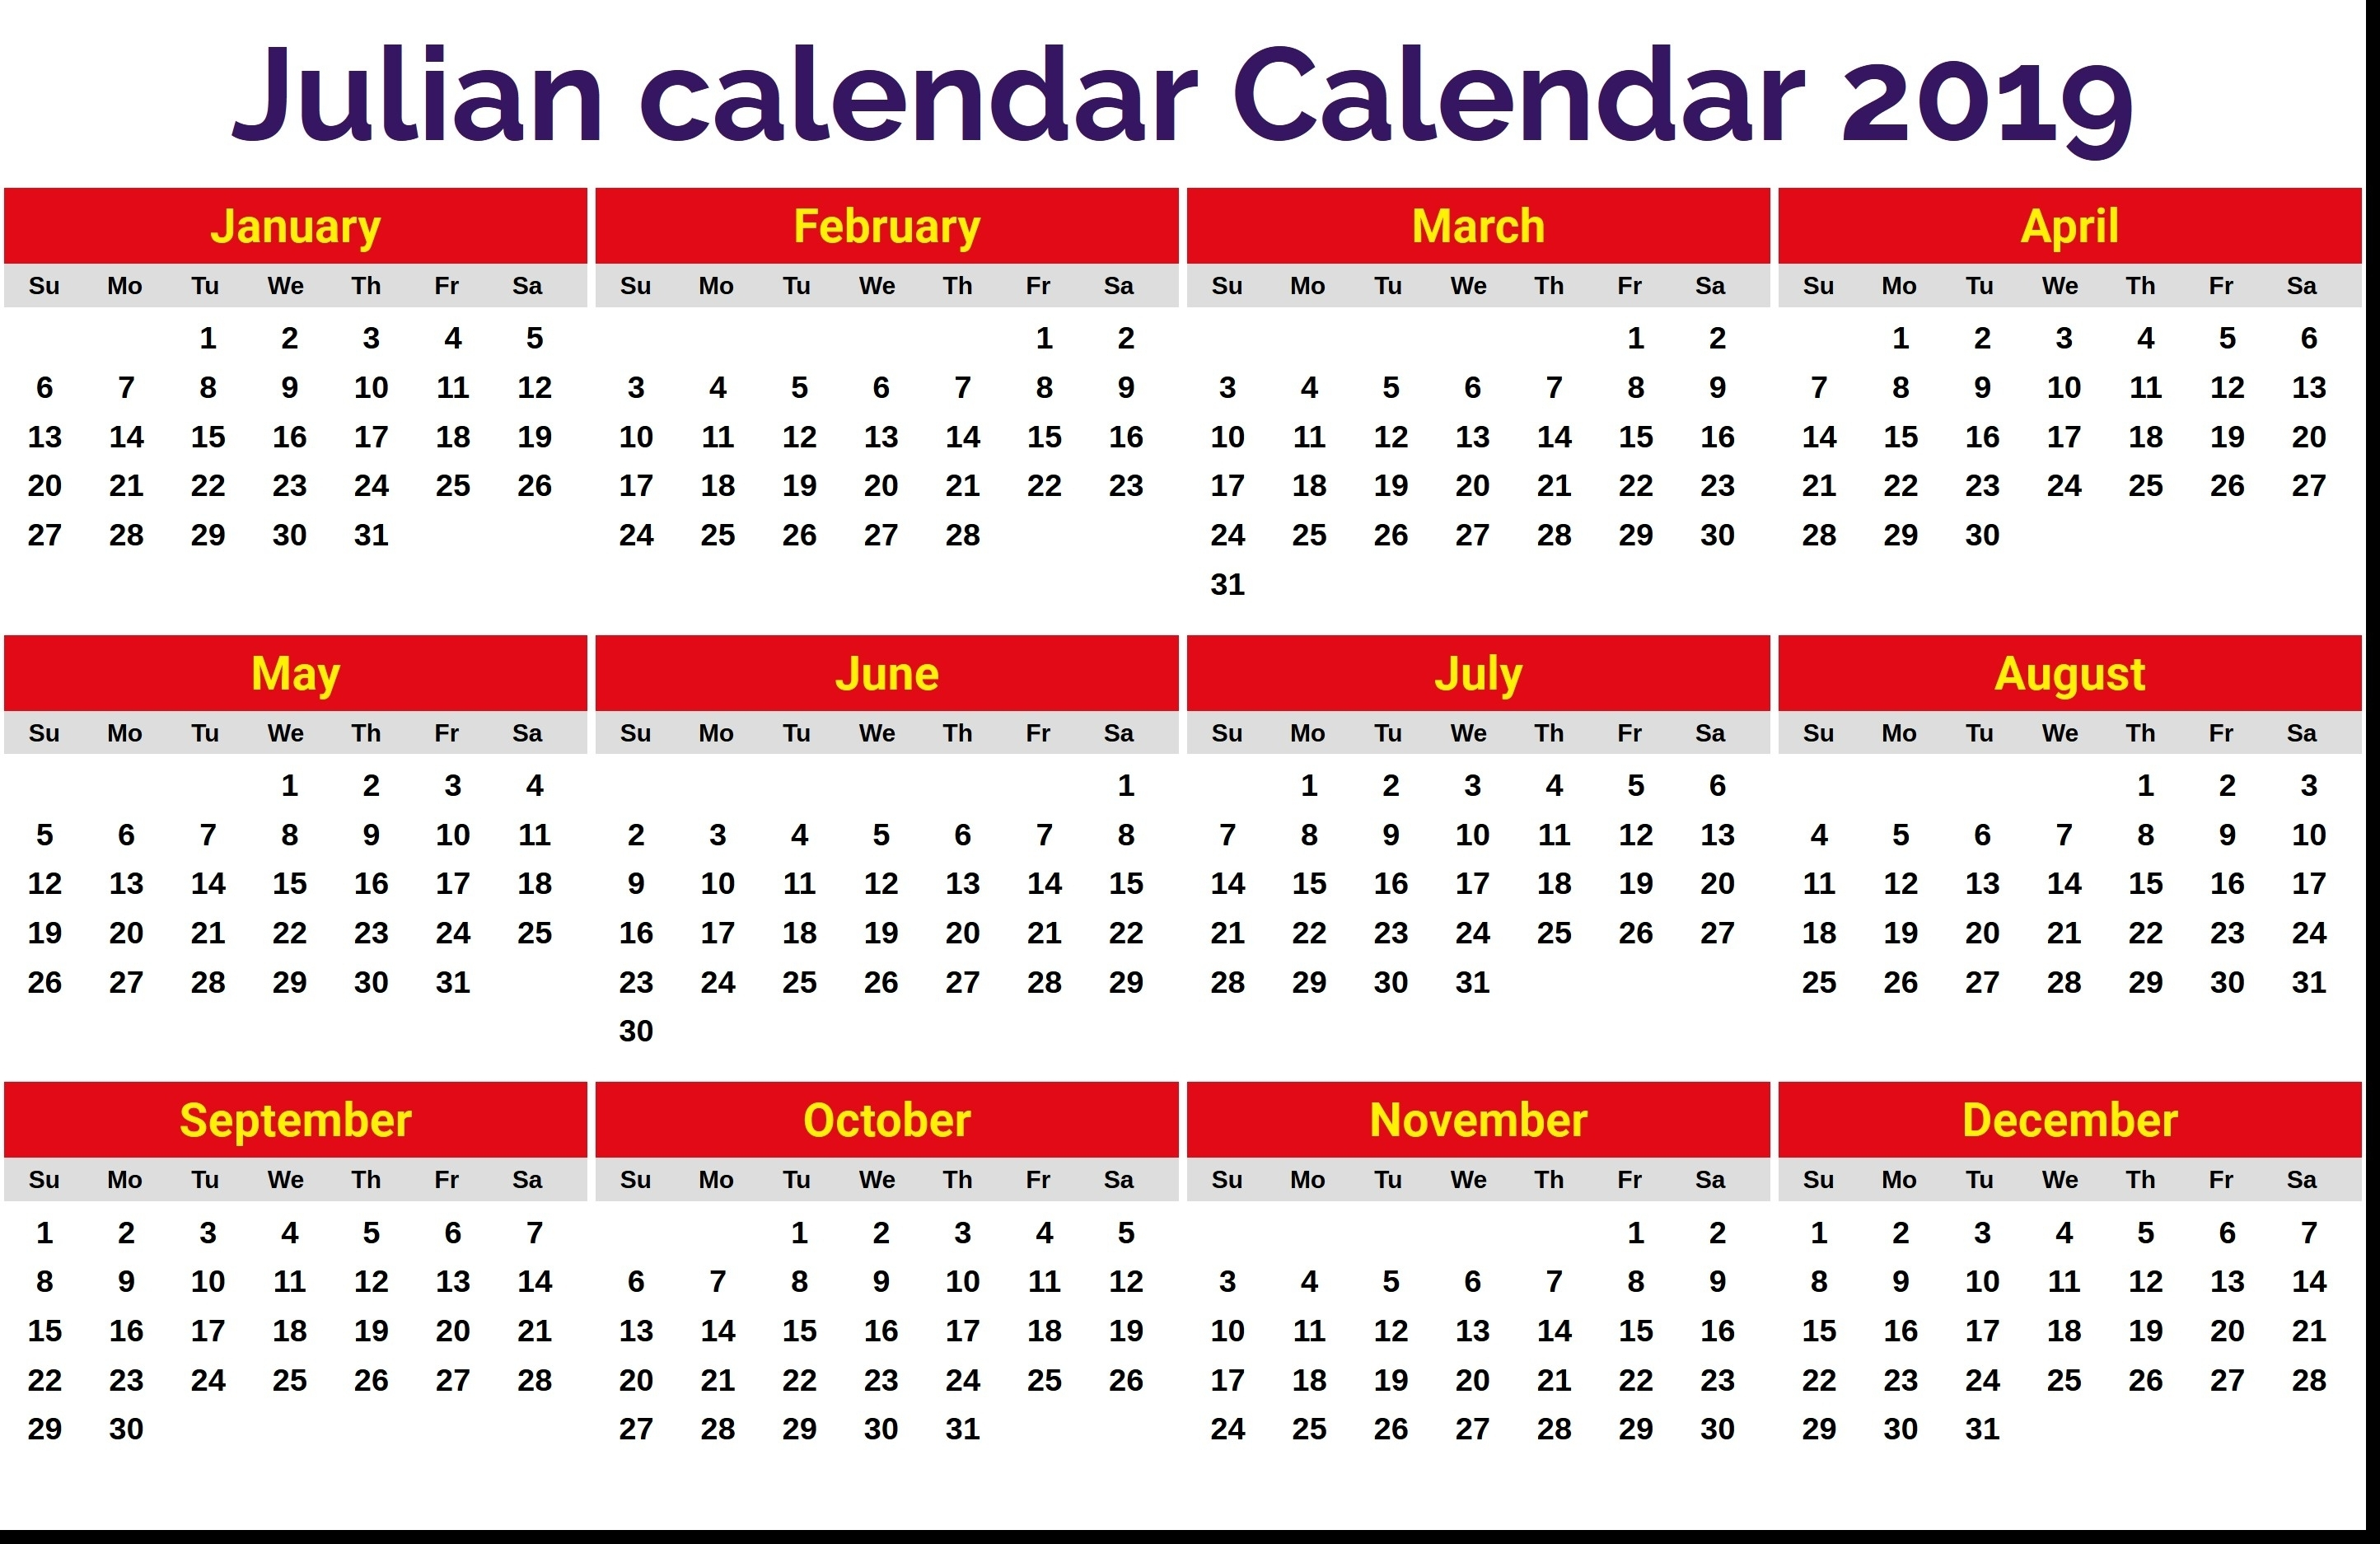 Julian Date August 11 2019 | Calendar Format Example  What Is The Julian Date For August 11